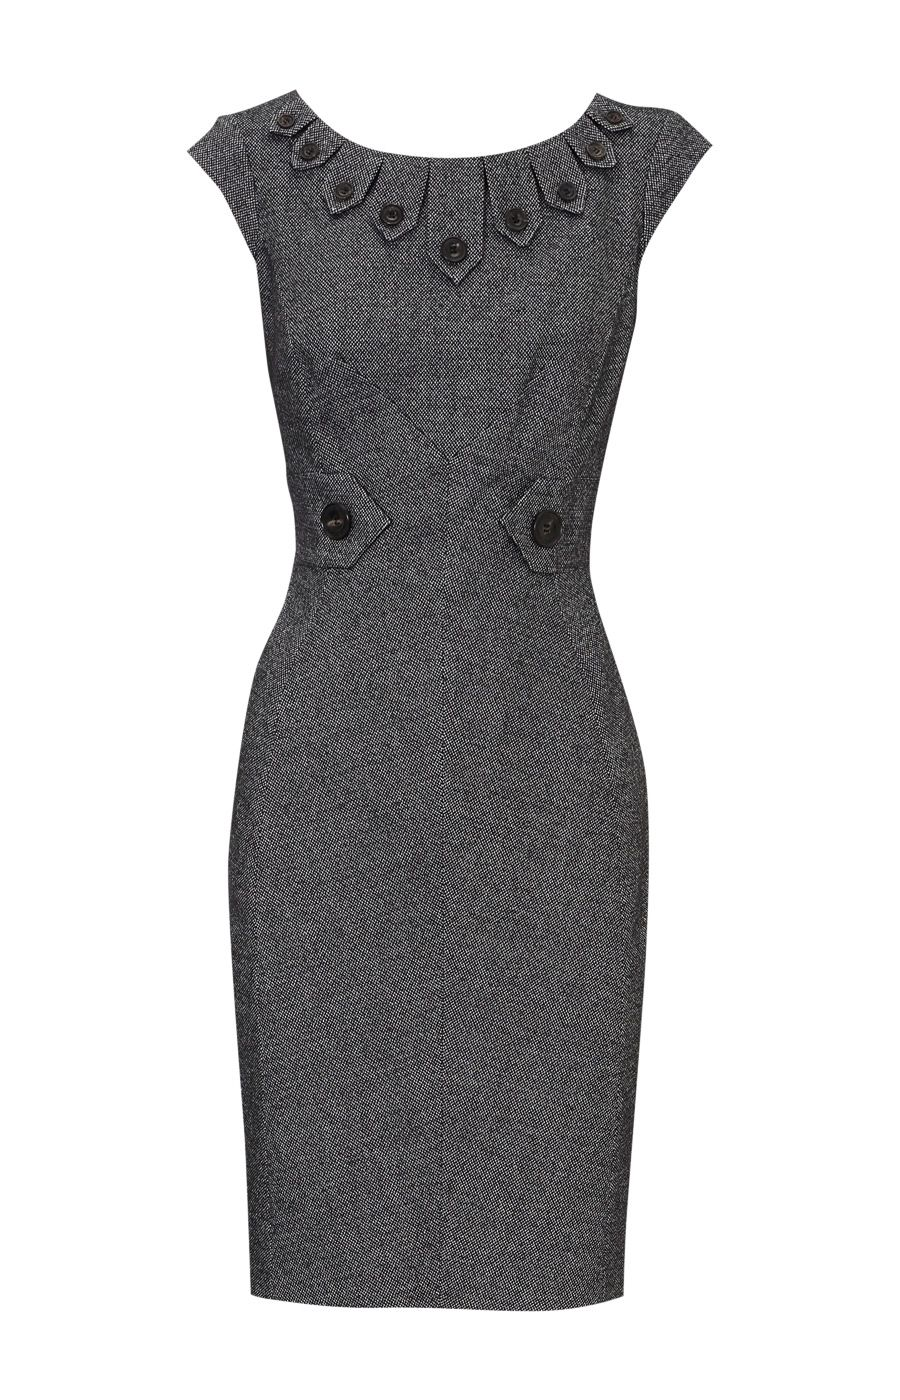 Details About Karen Millen Dk235 Tweed Dress Black Amp White